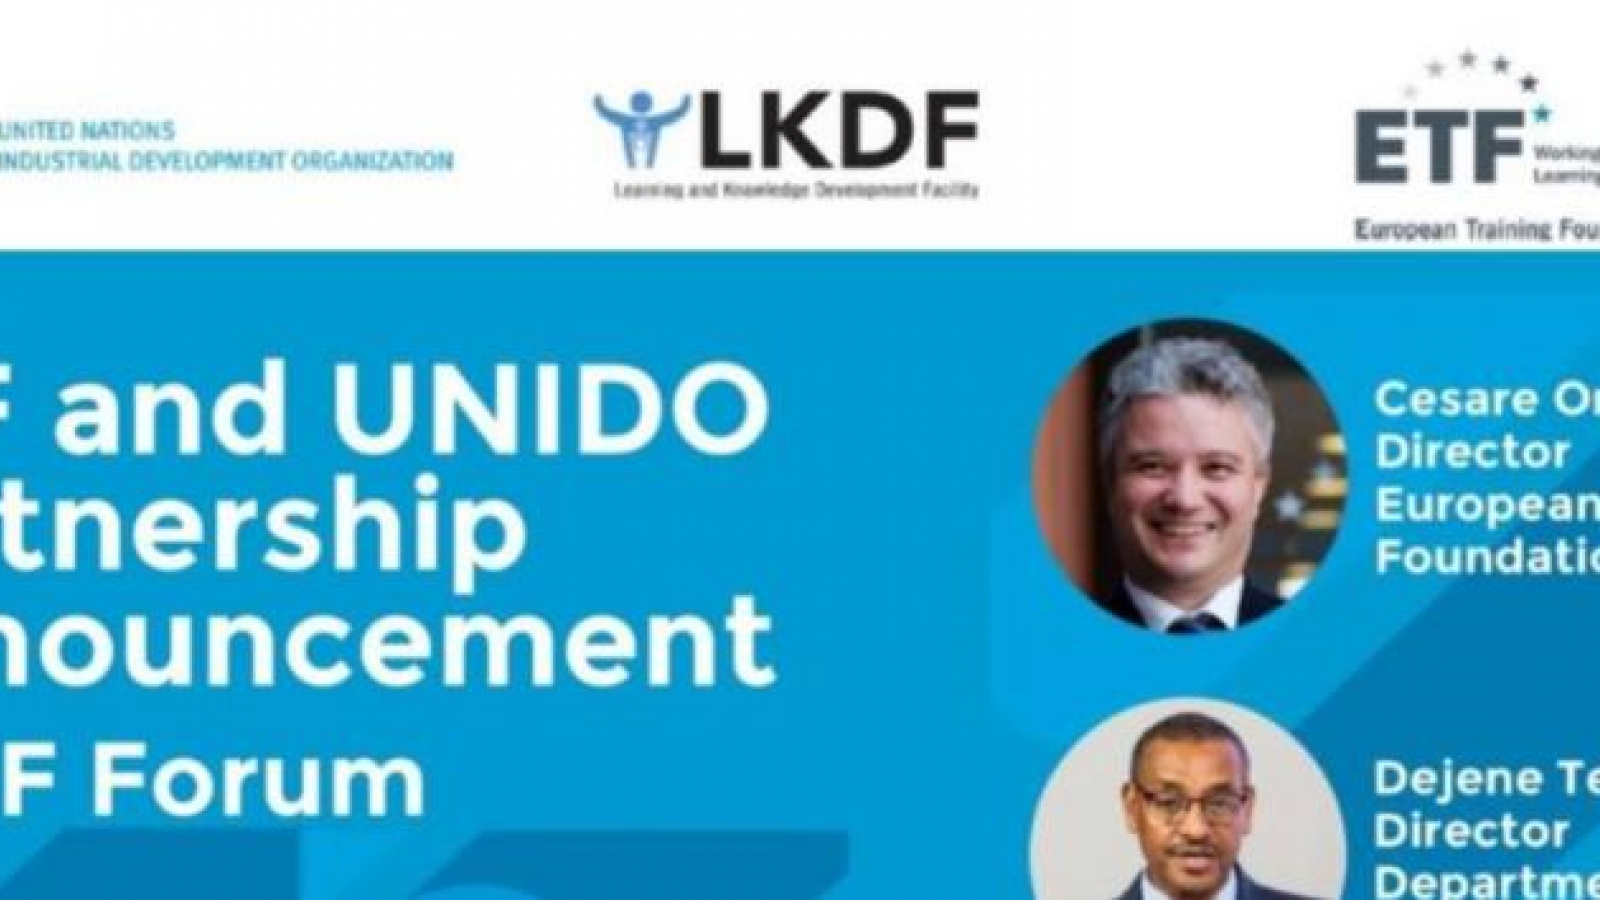 European Training Foundation and United Nations Industrial Development Organization formalise partnership to promote green skills and sustainable development